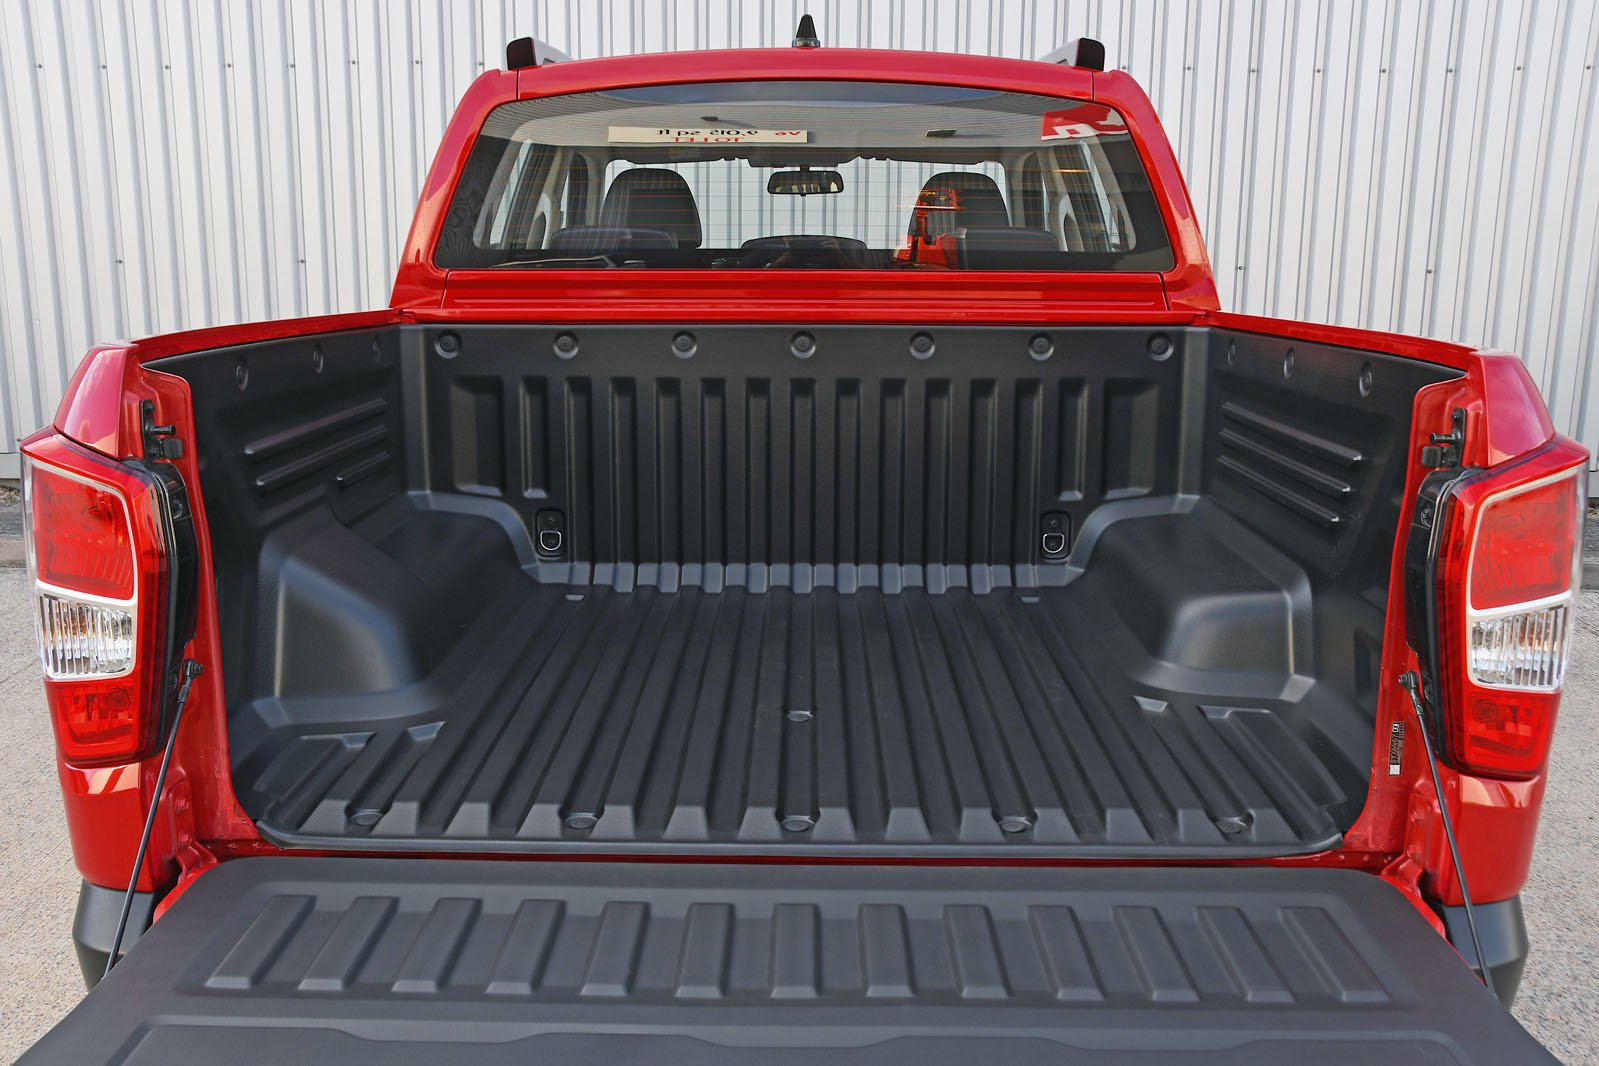 Ssangyong Musso bed